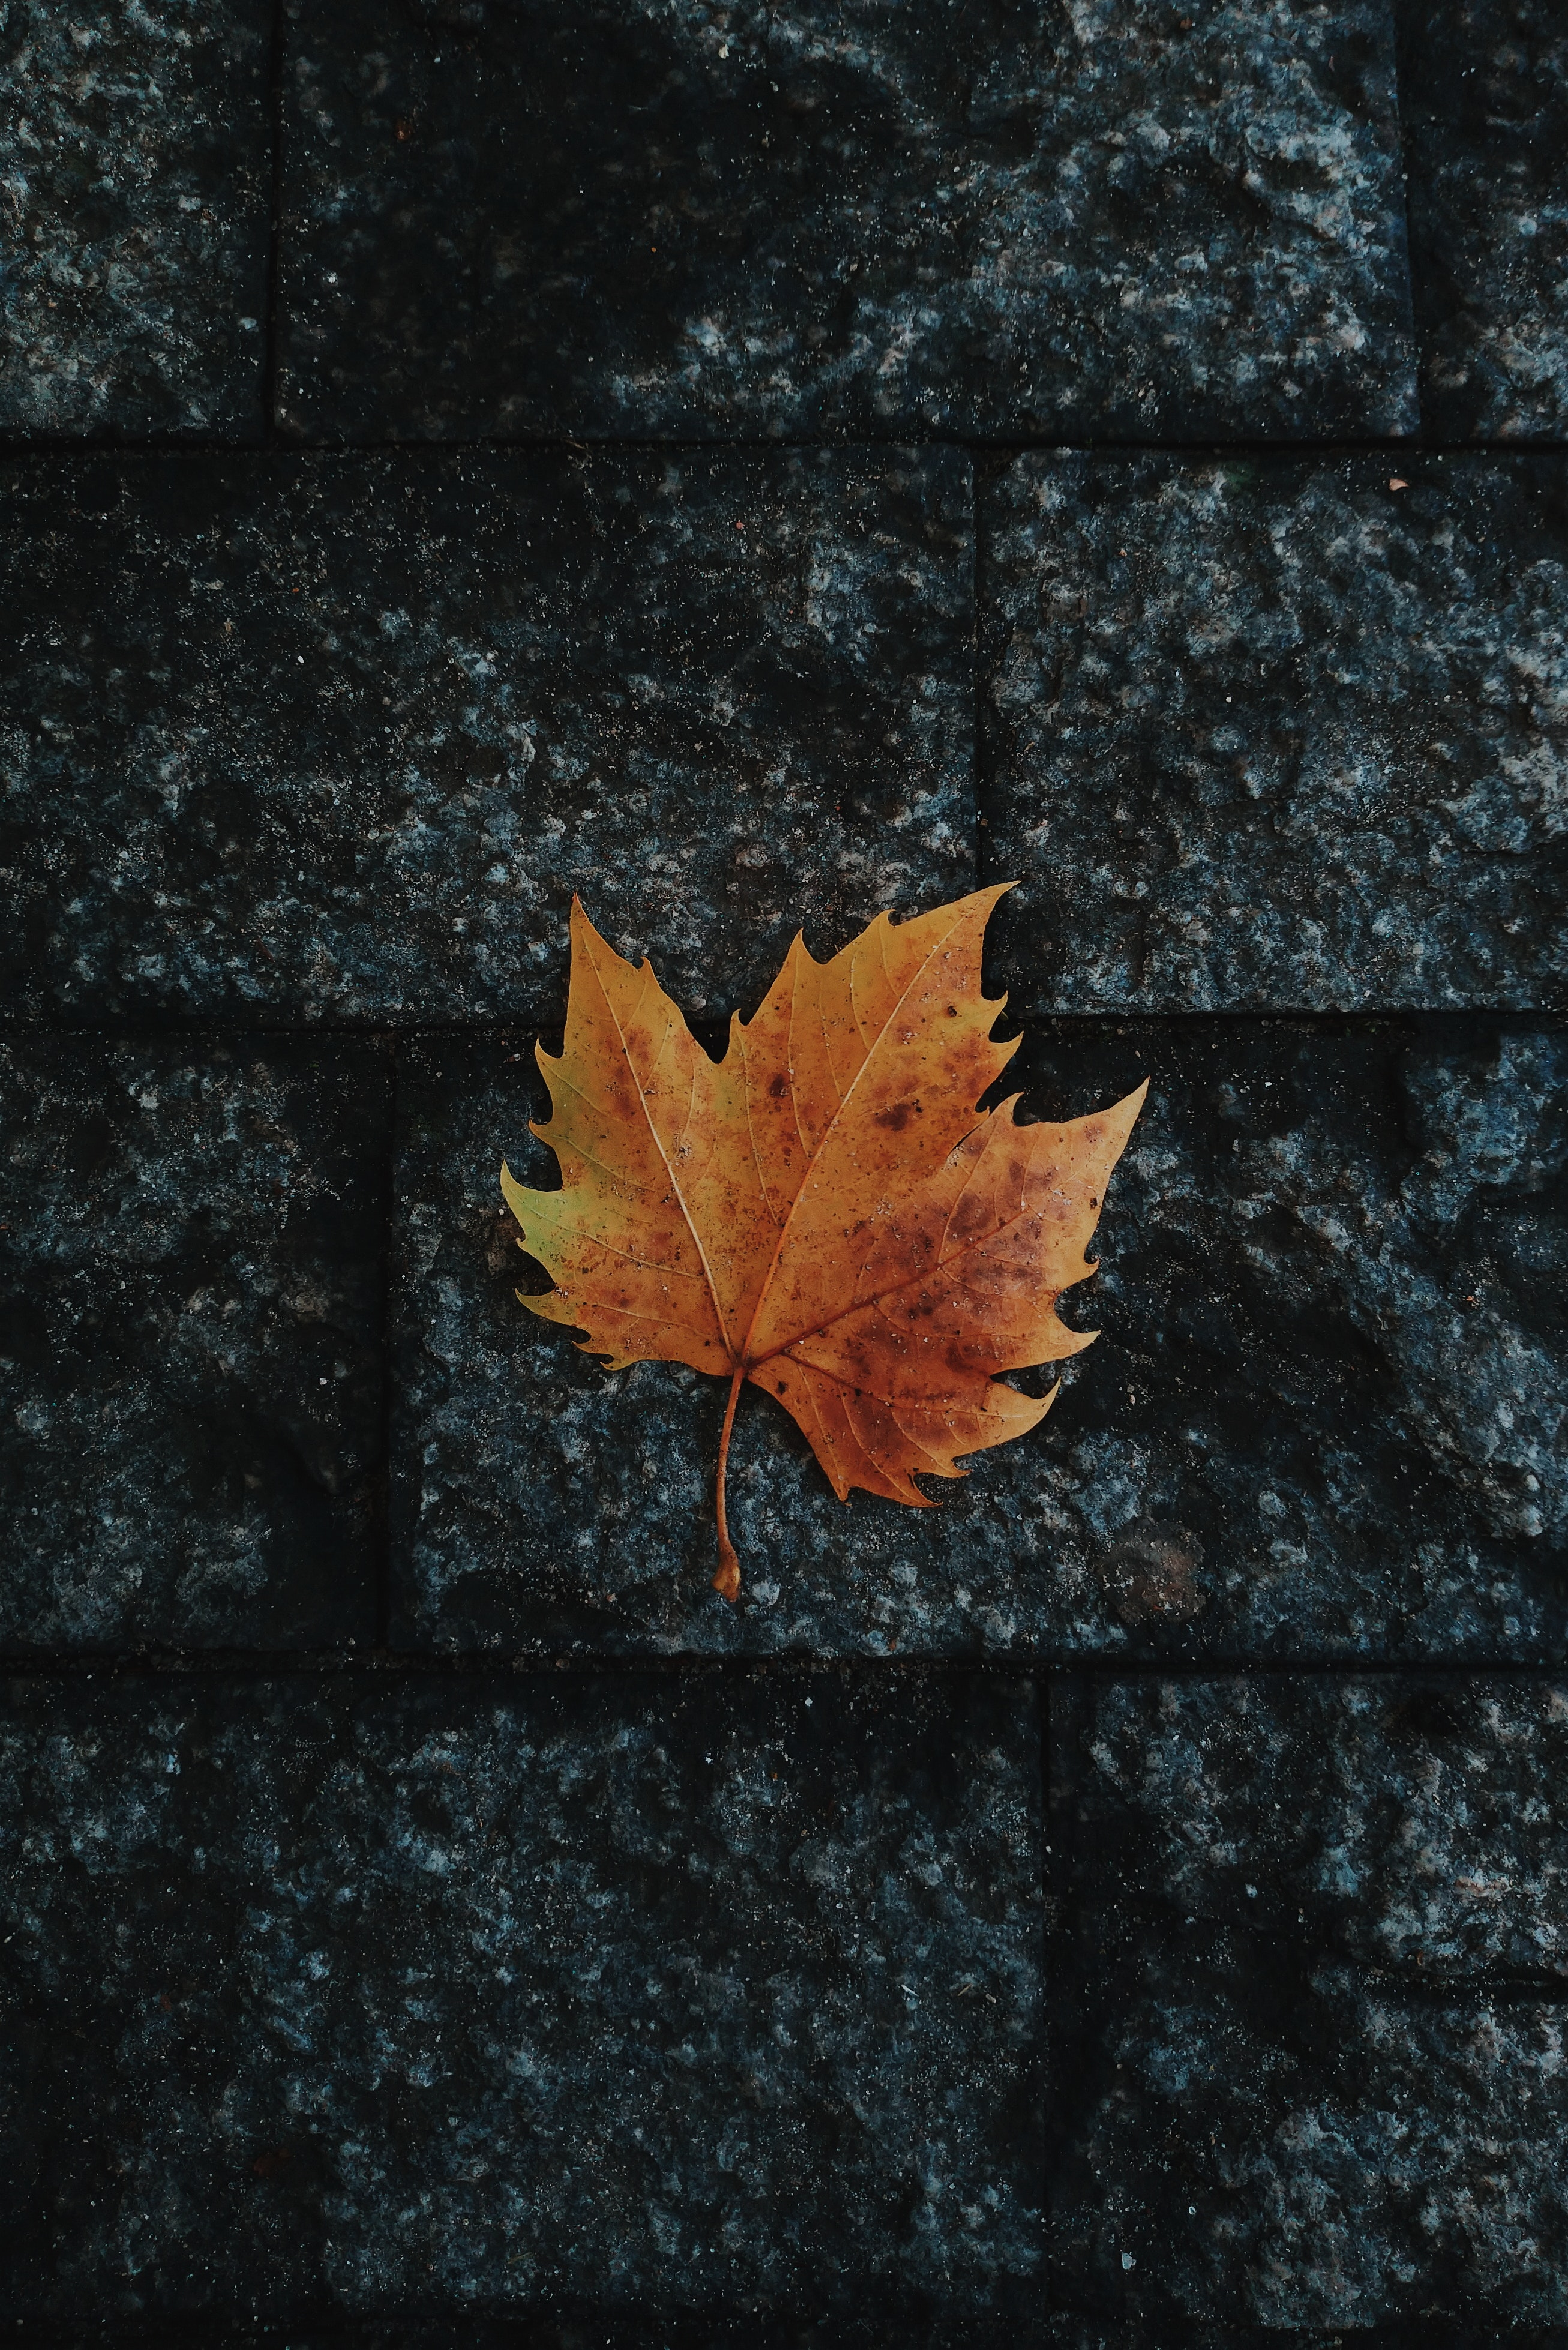 69110 download wallpaper Nature, Sheet, Leaf, Maple, Fallen, Autumn screensavers and pictures for free